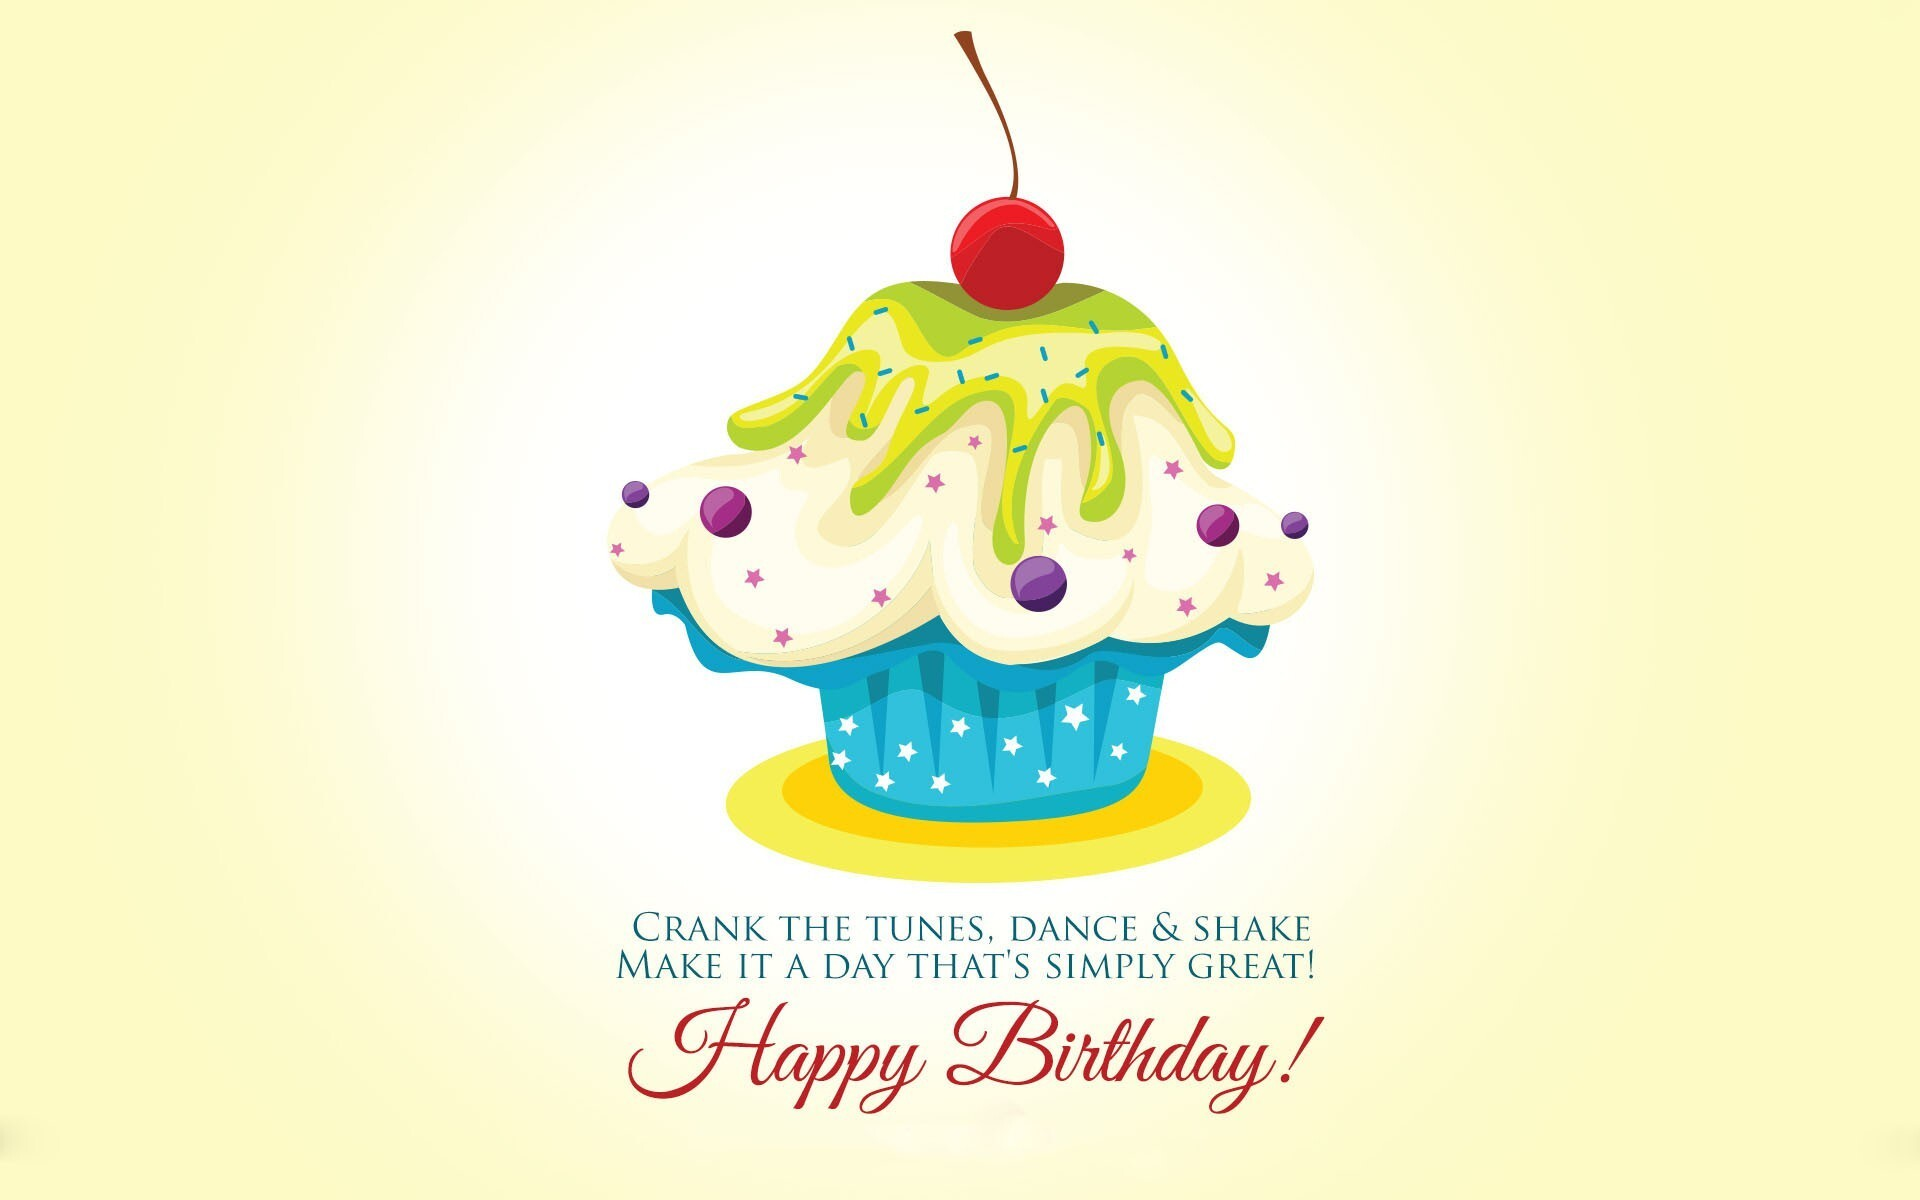 Wish You Happy Birthday Greeting Quote Hd Wallpaper Hd Wallpapers